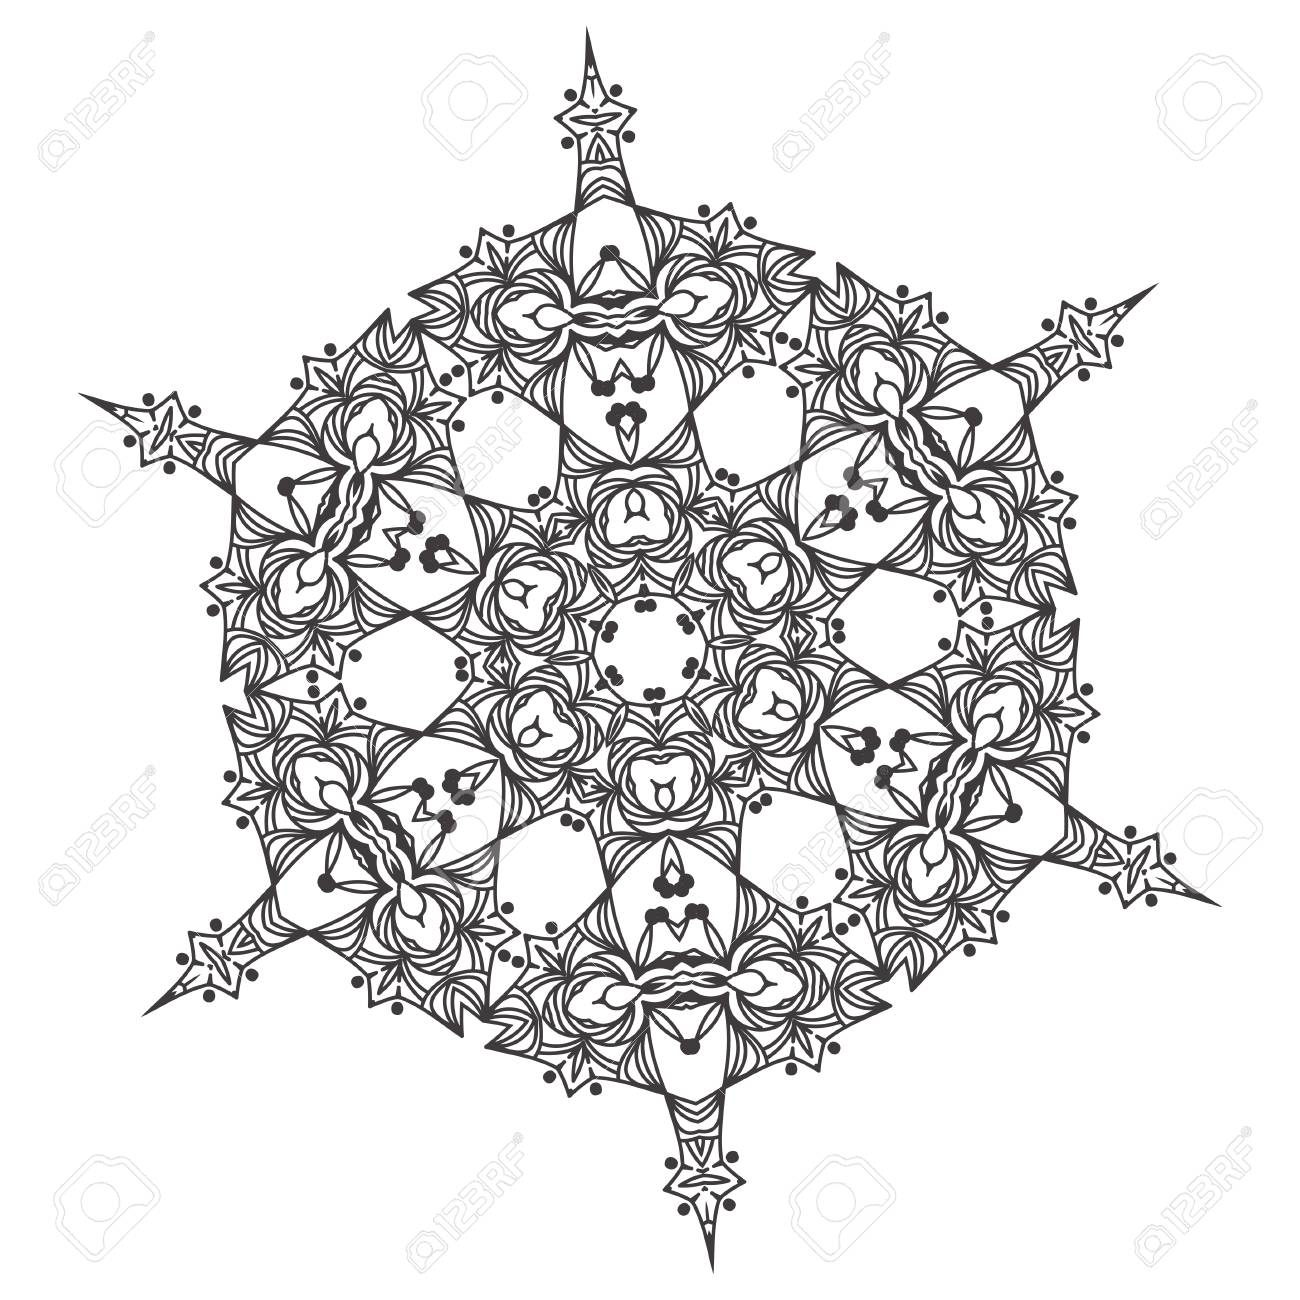 Abstract lace snowflake mandala ornament - Coloring page for..